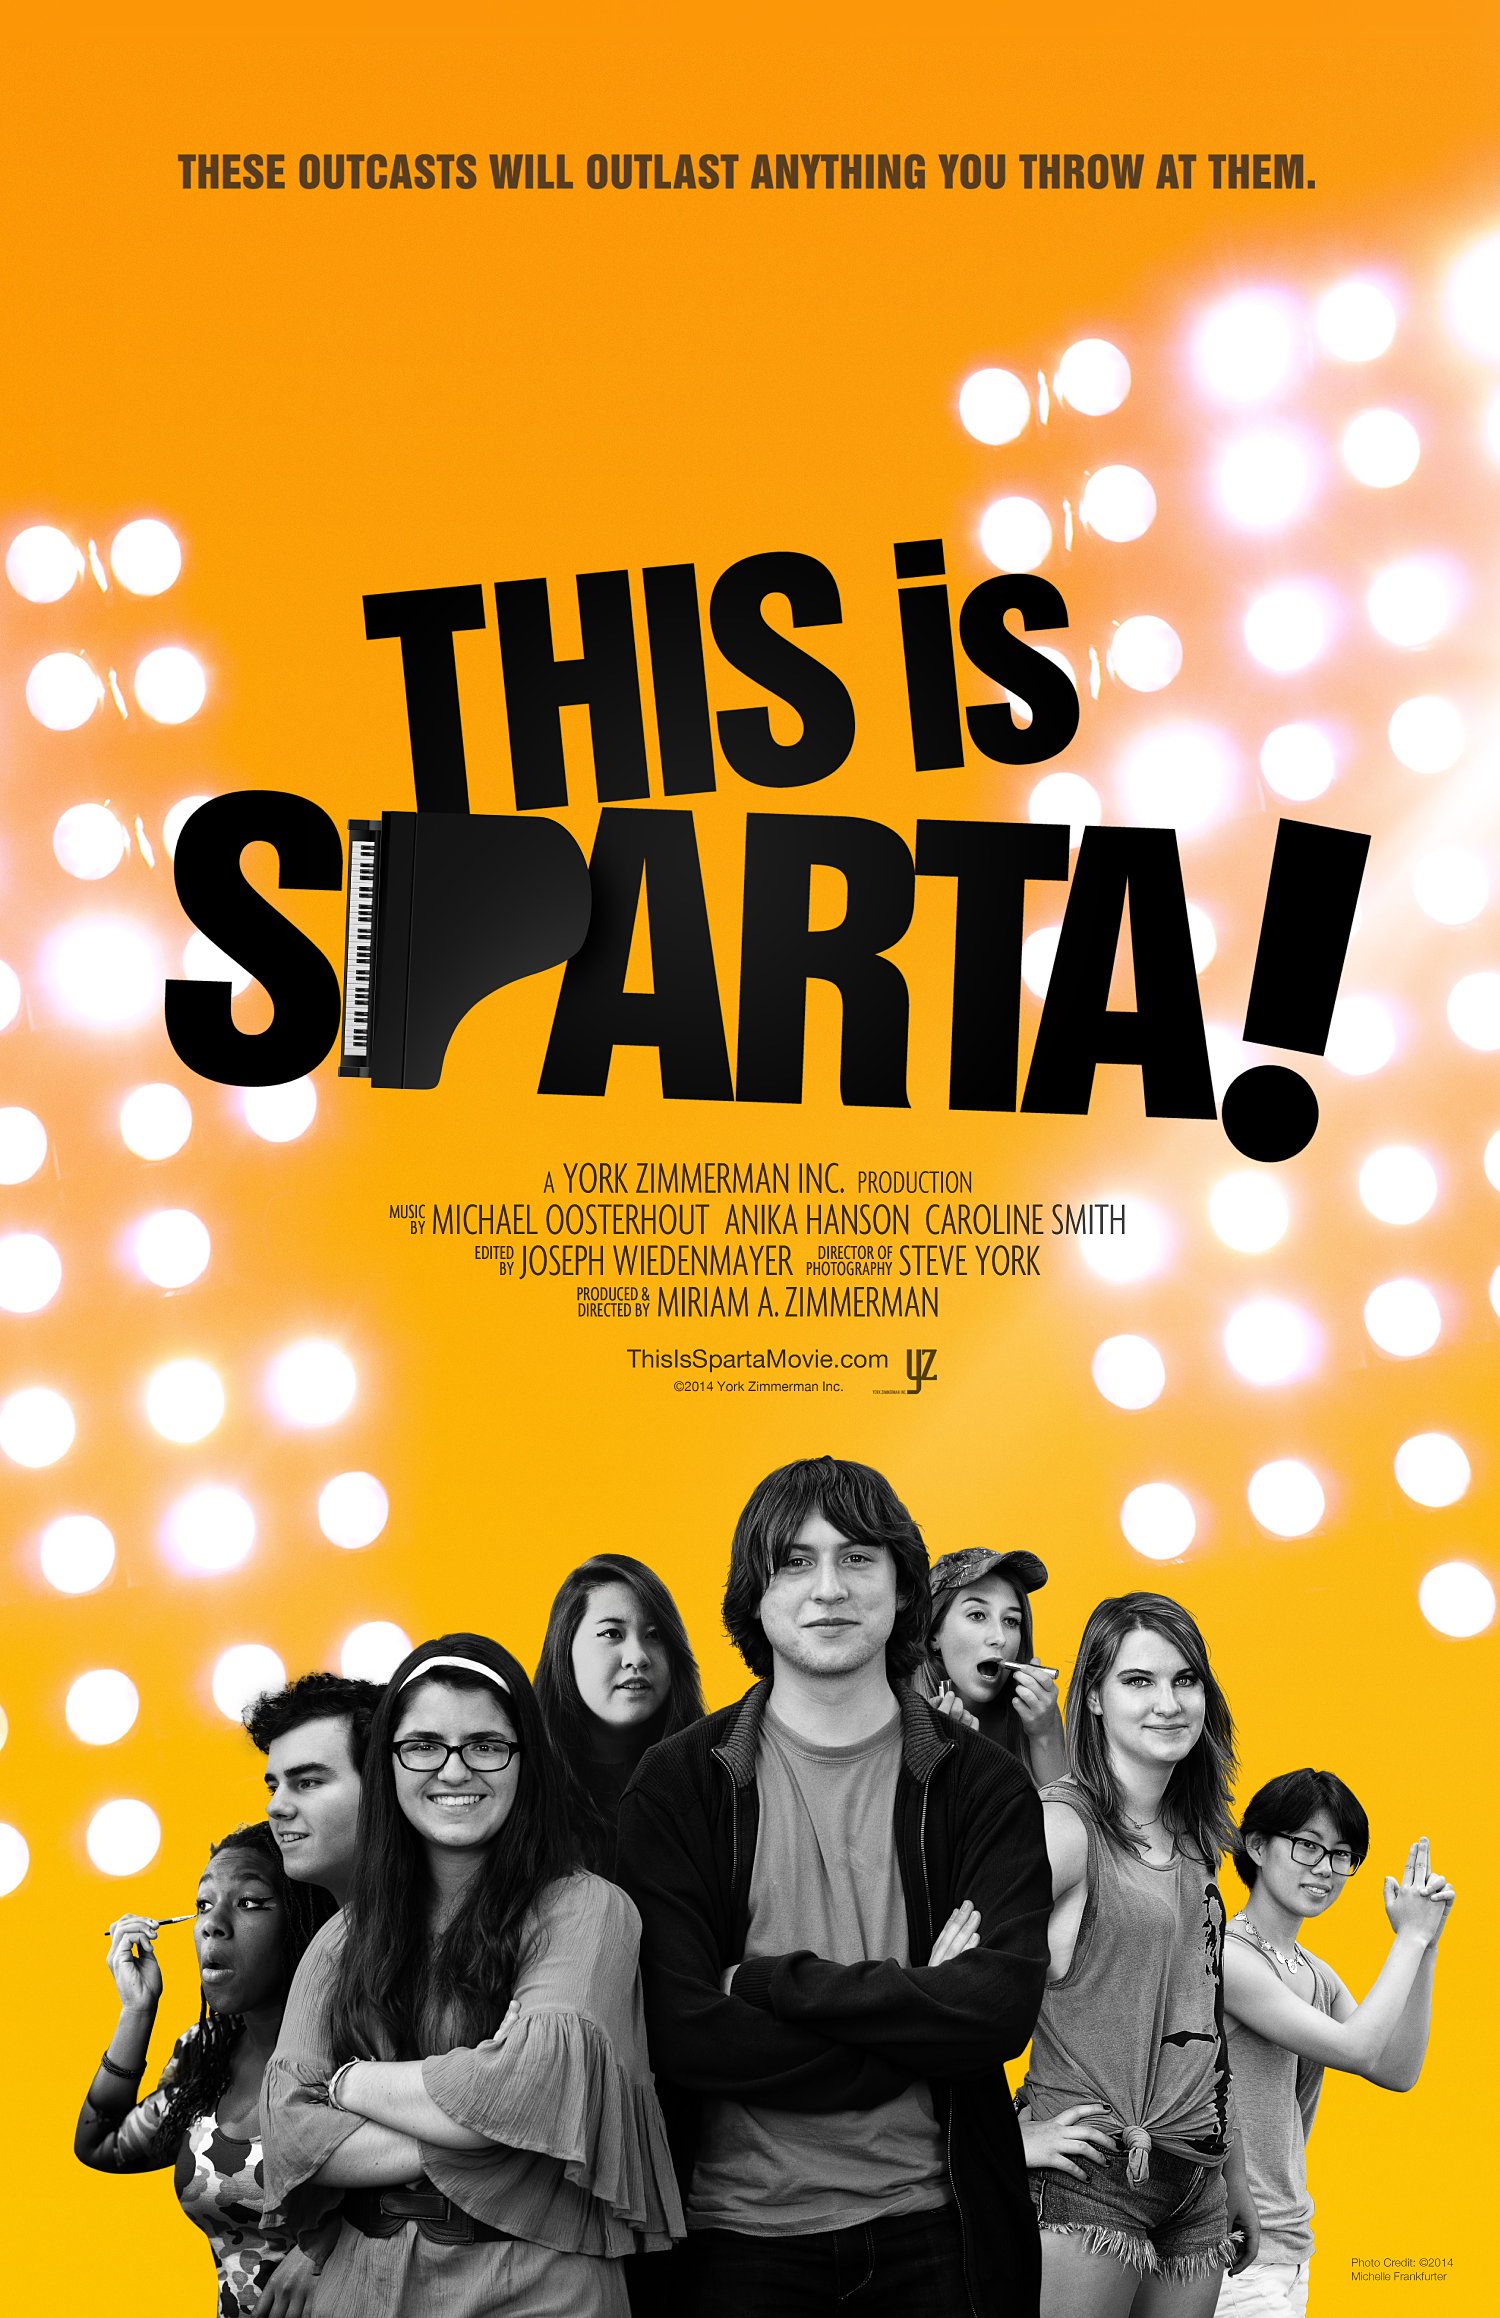 - What would you do if your high school classmates rolled their eyes and dismissed you as just another nerdy weirdo who doesn't fit in?The teens known as Spartans didn't let others define them. They wrote and performed a full-length musical about their group of friends, and invited the world to come see it.A 90 minute documentary about real friends, good music, & how to survive high school.